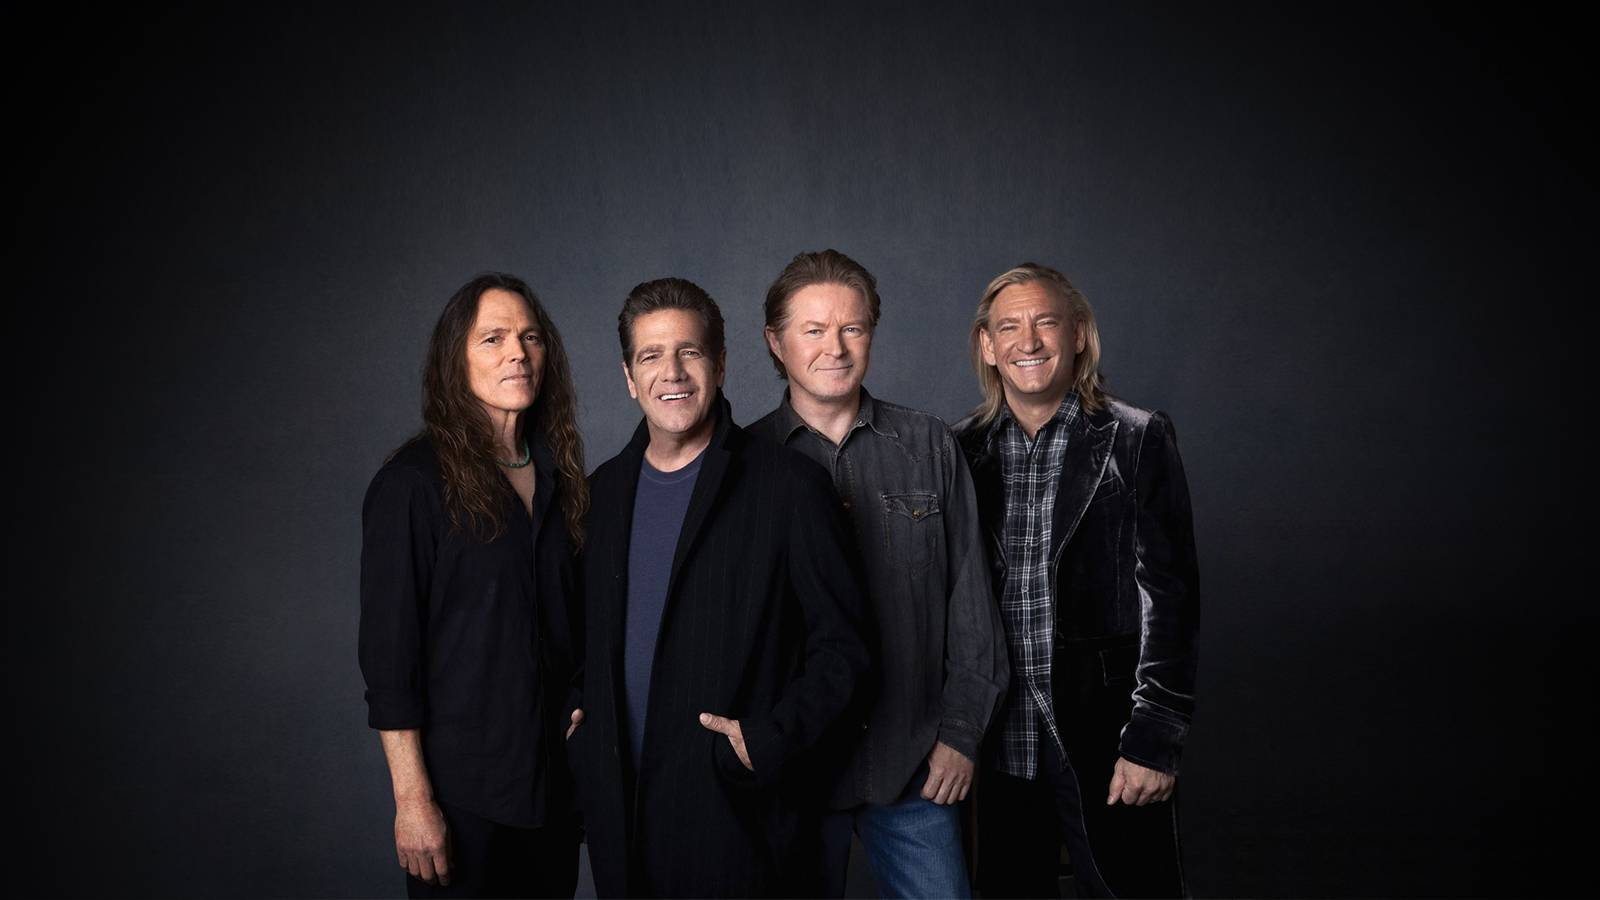 The Eagles (Rescheduled from 4/12/2020, 10/3/2020)